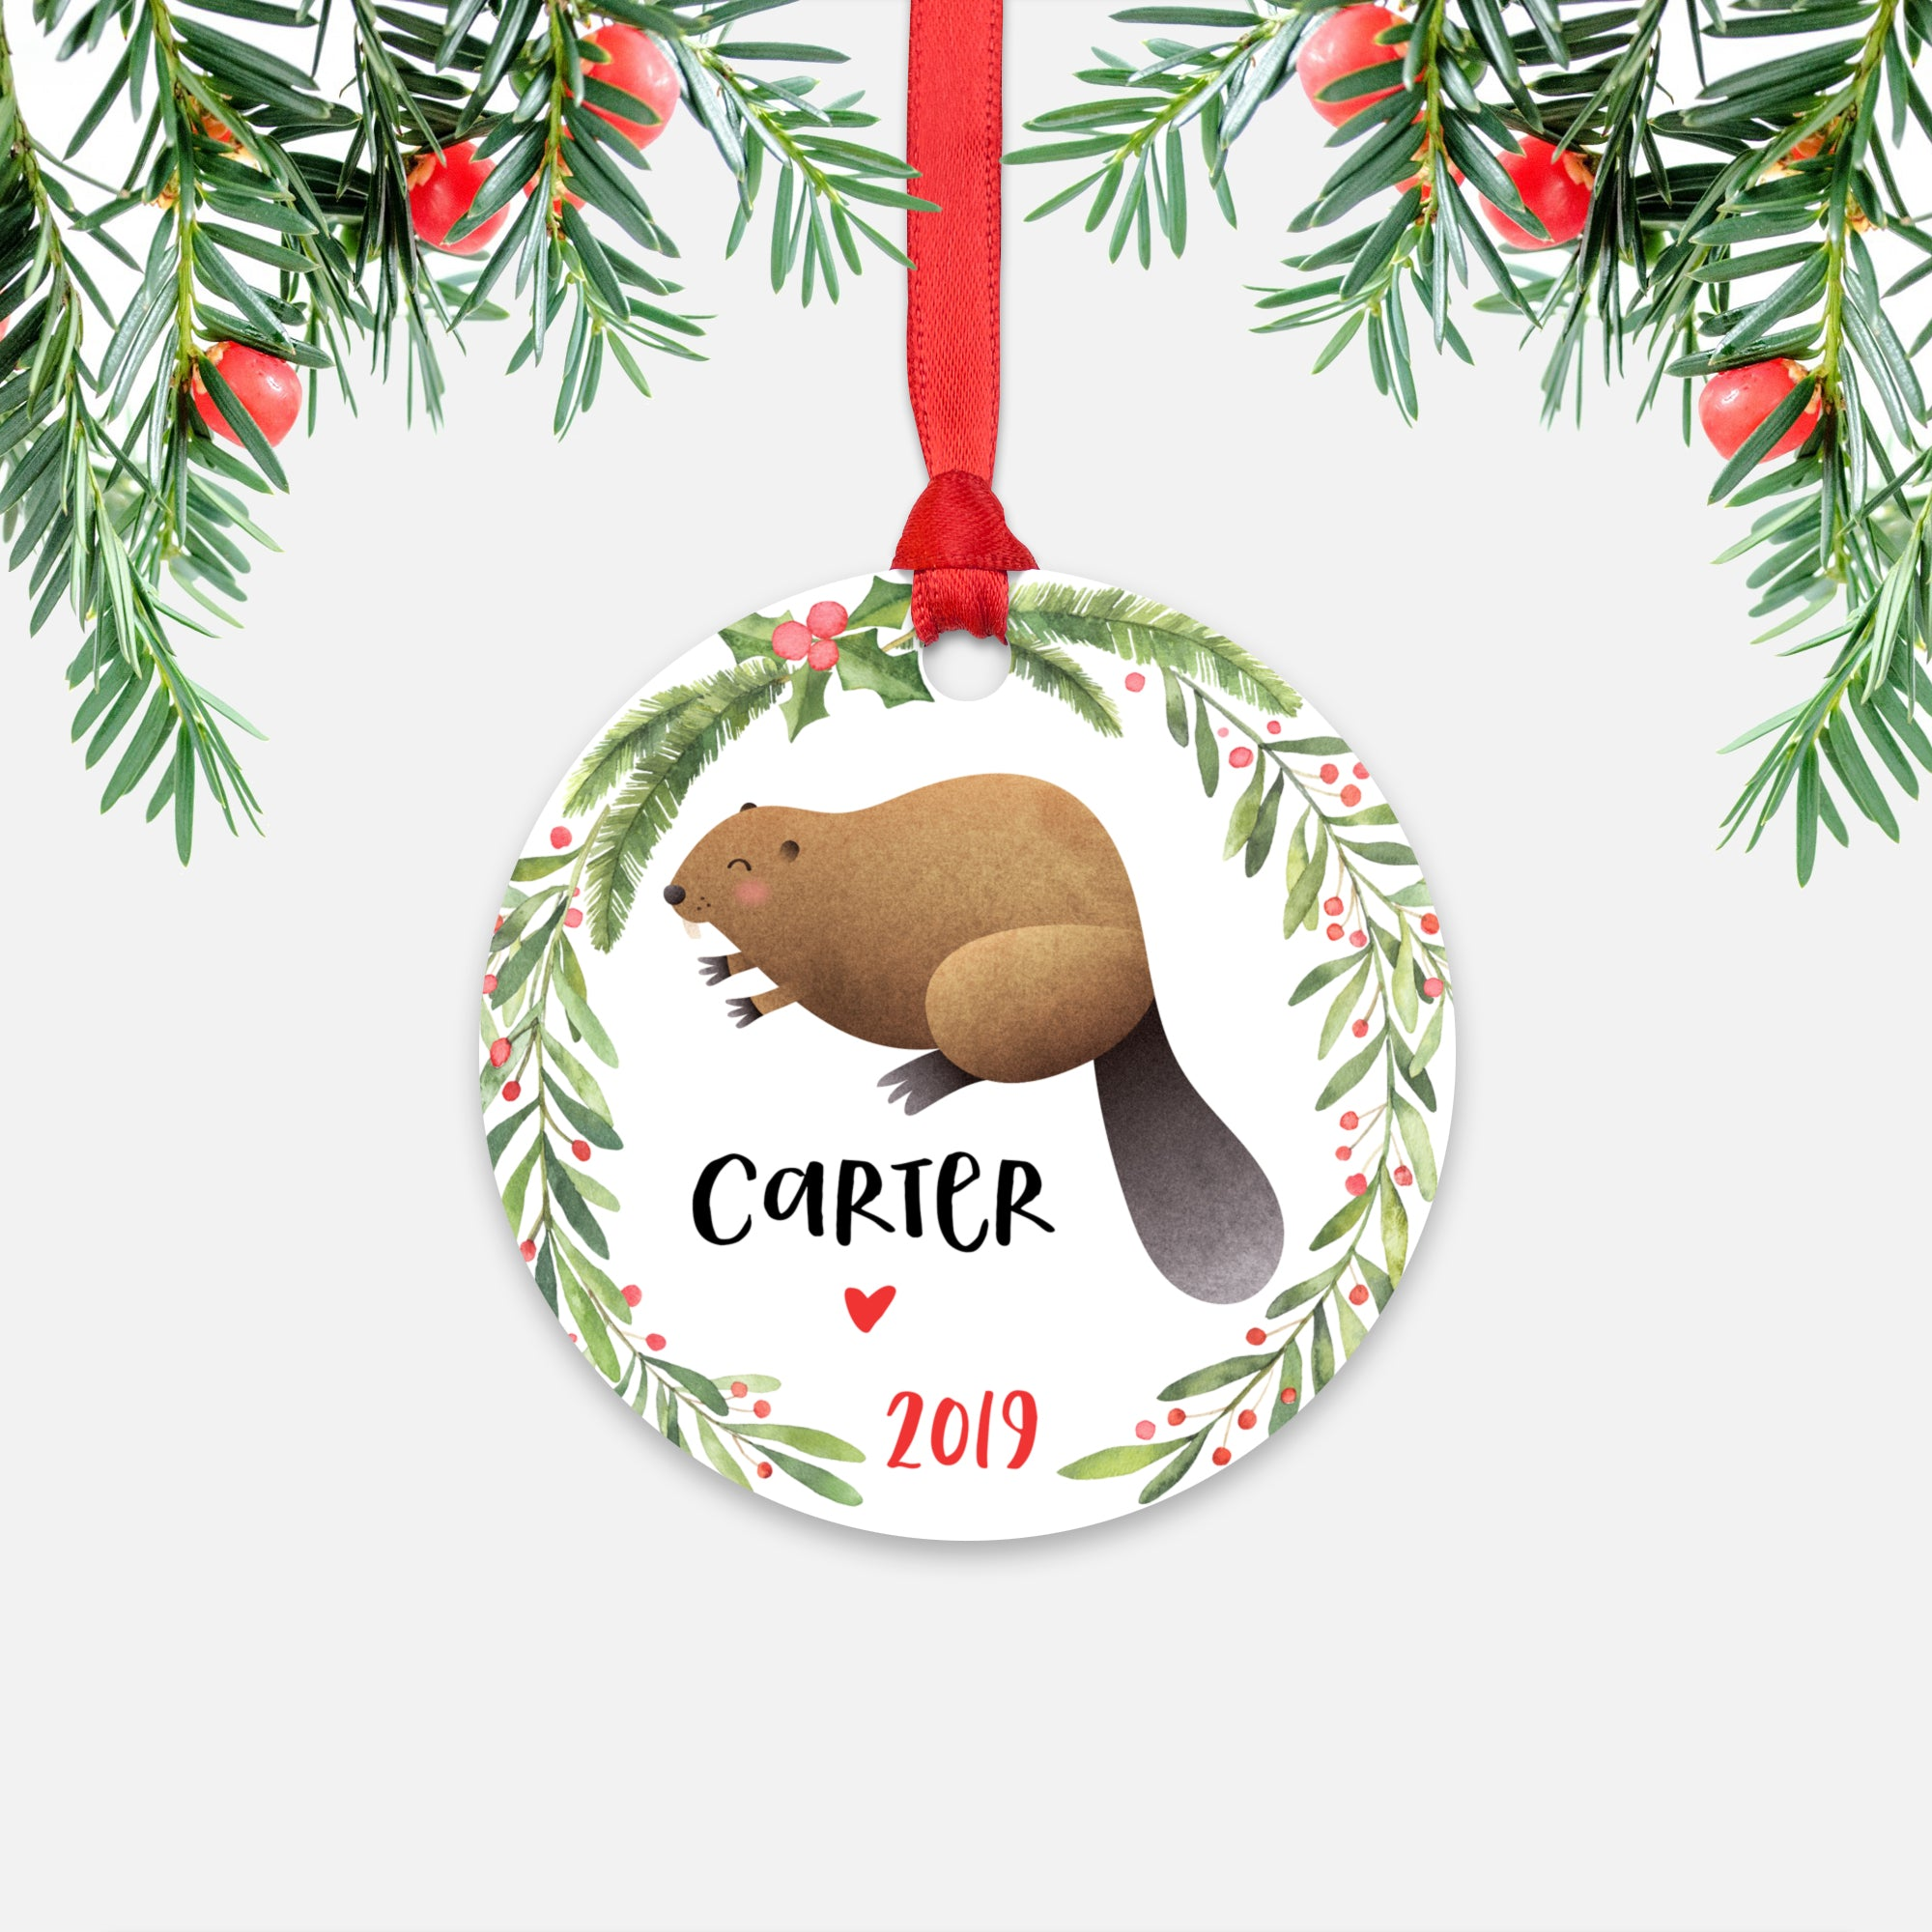 Beaver Woodland Animal Personalized Kids Name Christmas Ornament for Boy or Girl - Round Aluminum - Red ribbon